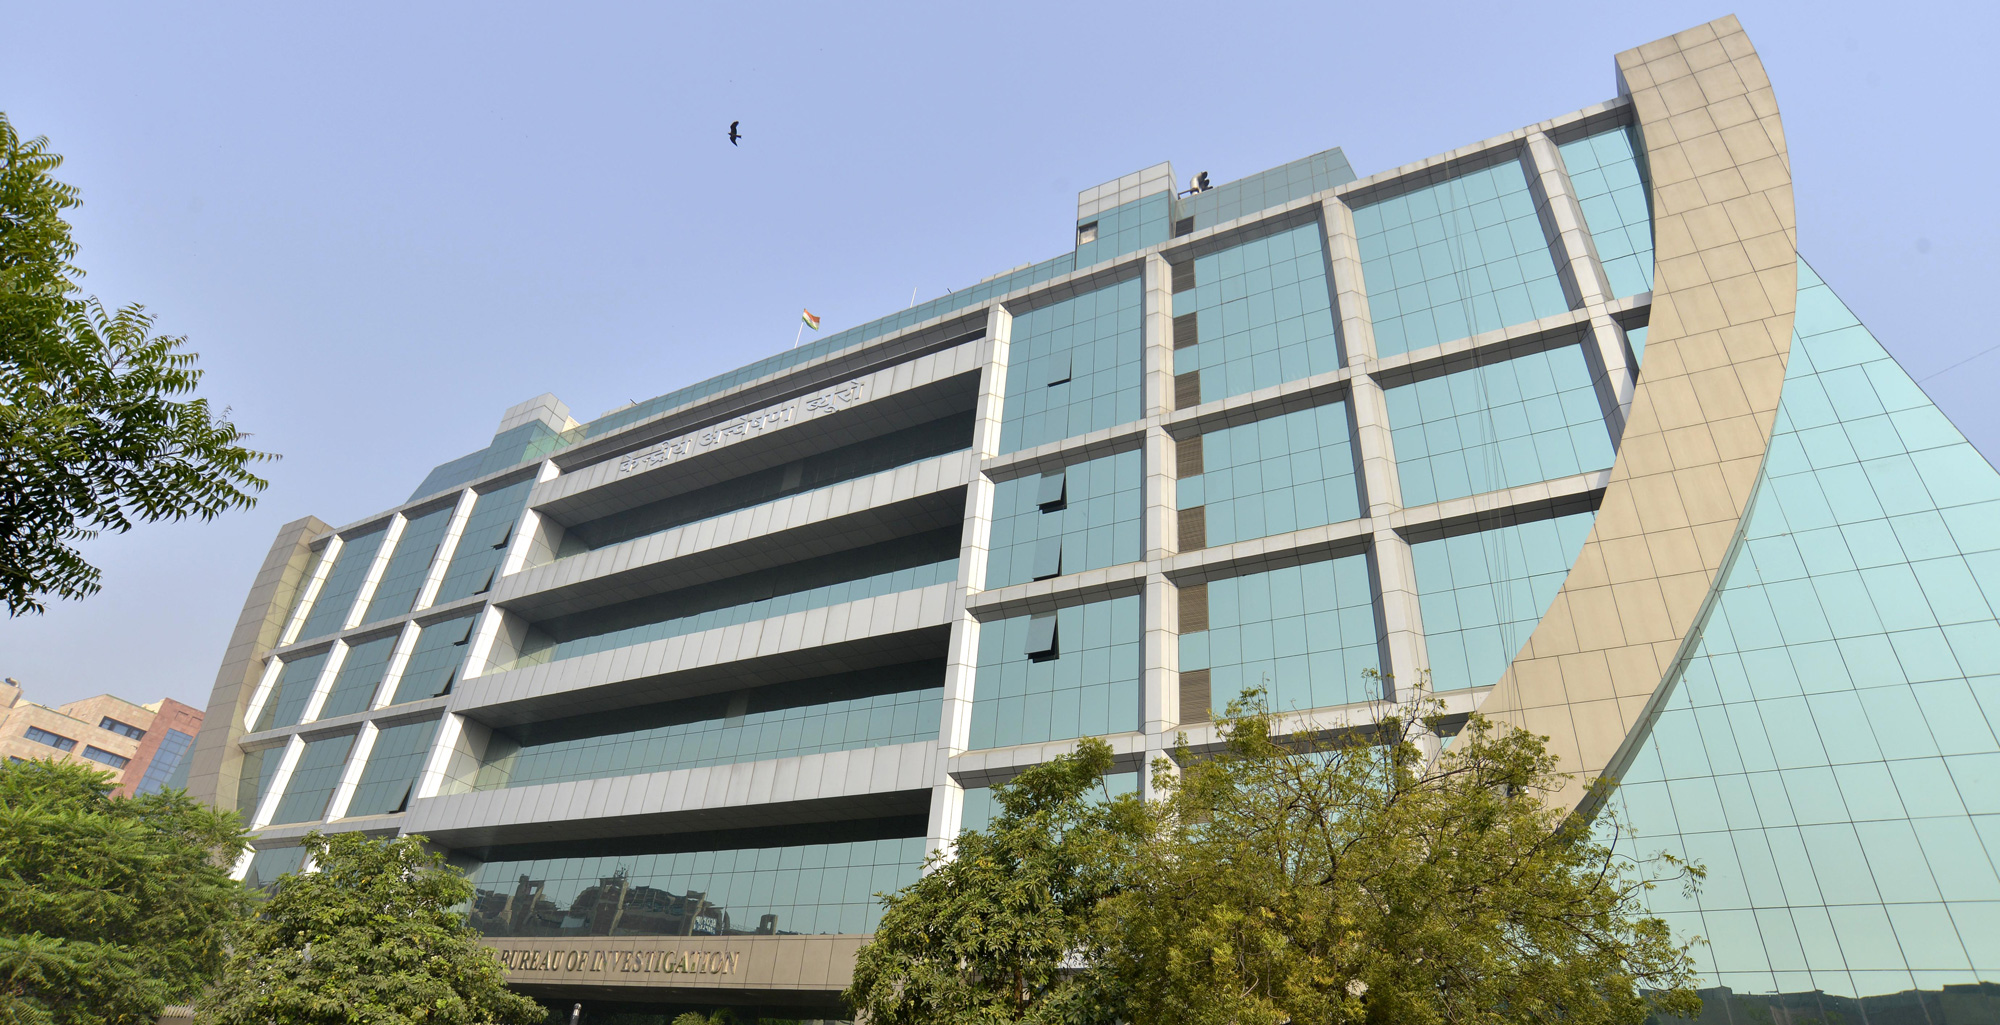 A five-member CBI team, including a woman constable, had to be rescued by police after family members of a fellow agency official accused in a 2014 land fraud locked up the sleuths and thrashed them on Saturday morning inside a house in Greater Noida.